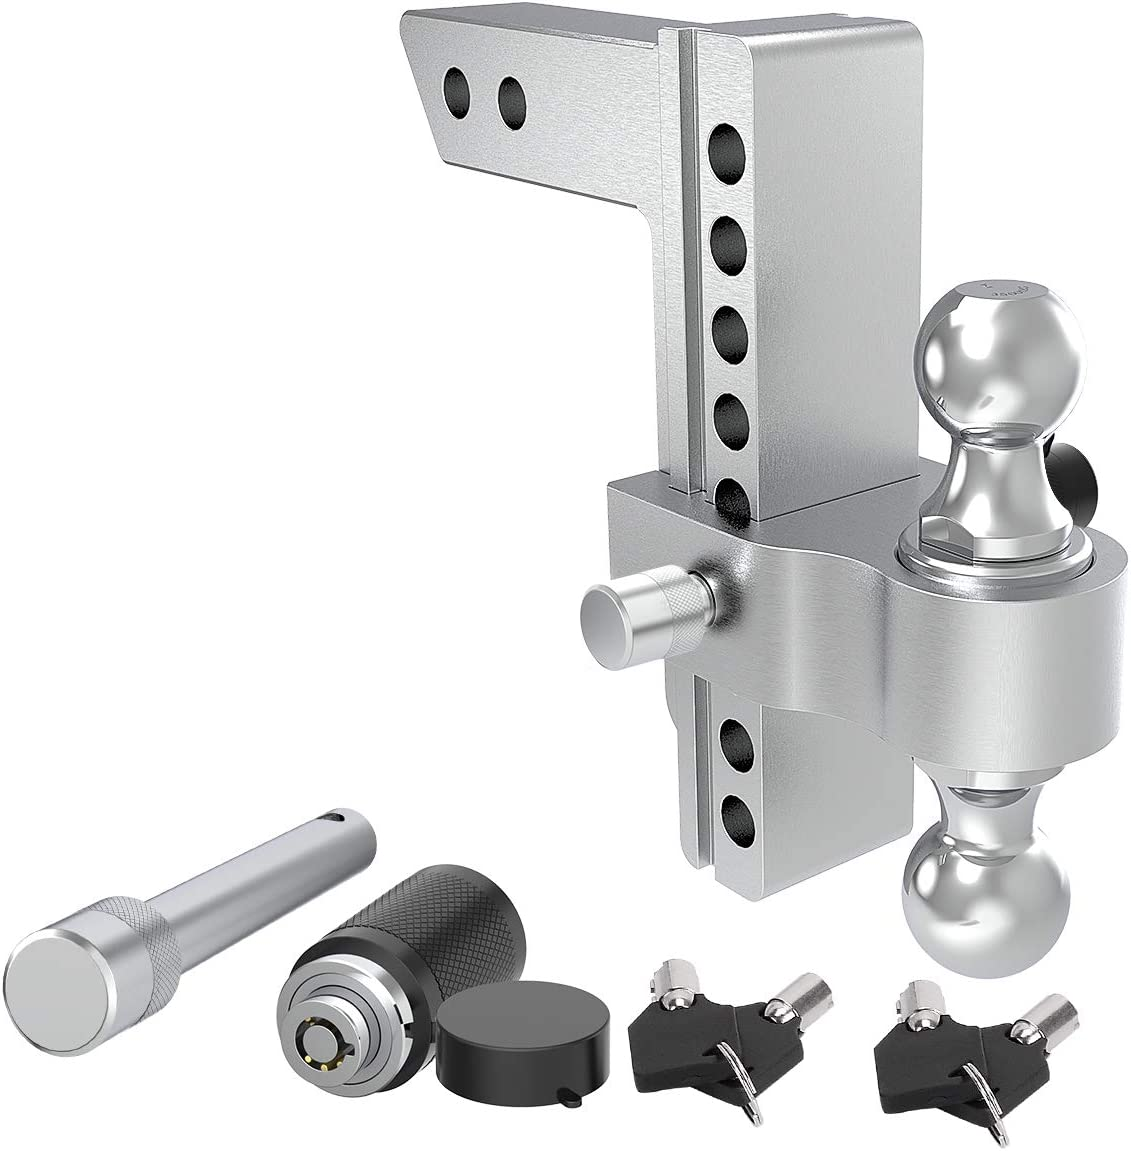 2 /& 2-5//16 YITAMOTOR Hitches 4 Drop Adjustable Trailer Hitch Ball Mount Aluminum Alloy 2 Forged Shank /& Steel Dual Combo Balls with Double Keyed Locking Pins